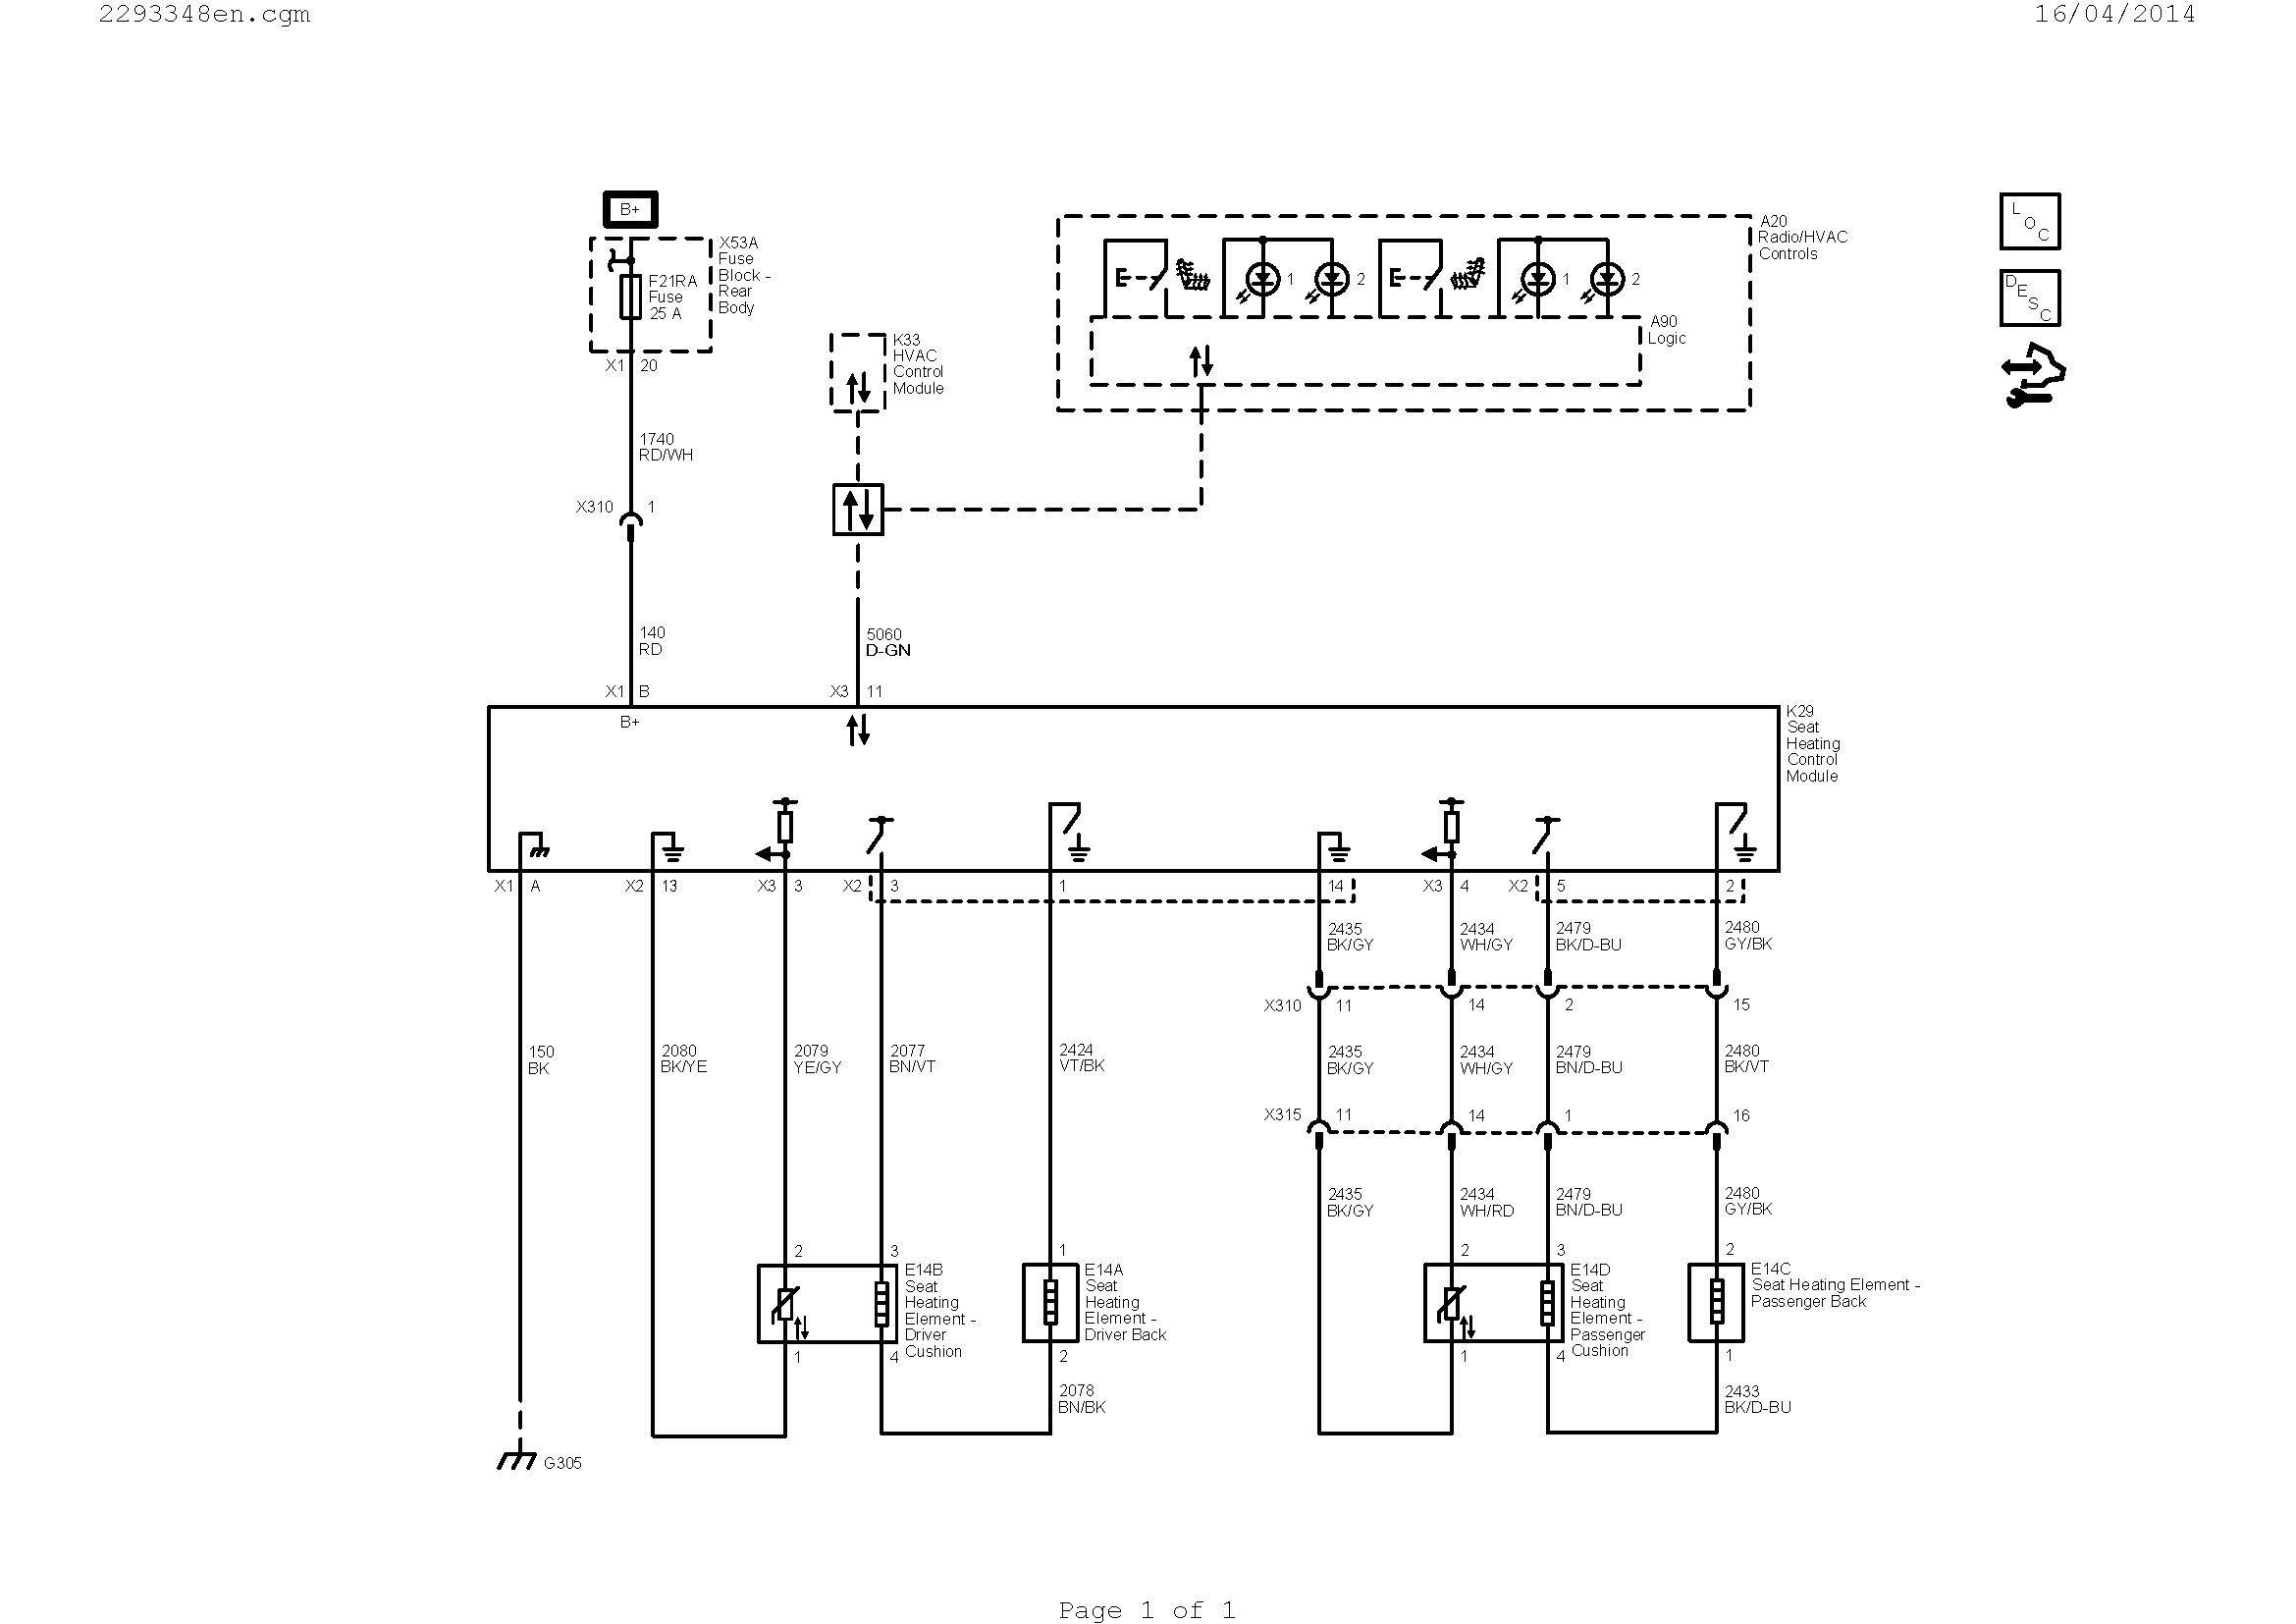 schneider lc1d25 wiring diagram Download-Appliance Wiring Diagrams Guitar Wiring Diagram Editor Best Wiring Diagram Guitar Fresh Hvac Diagram Best 6-c